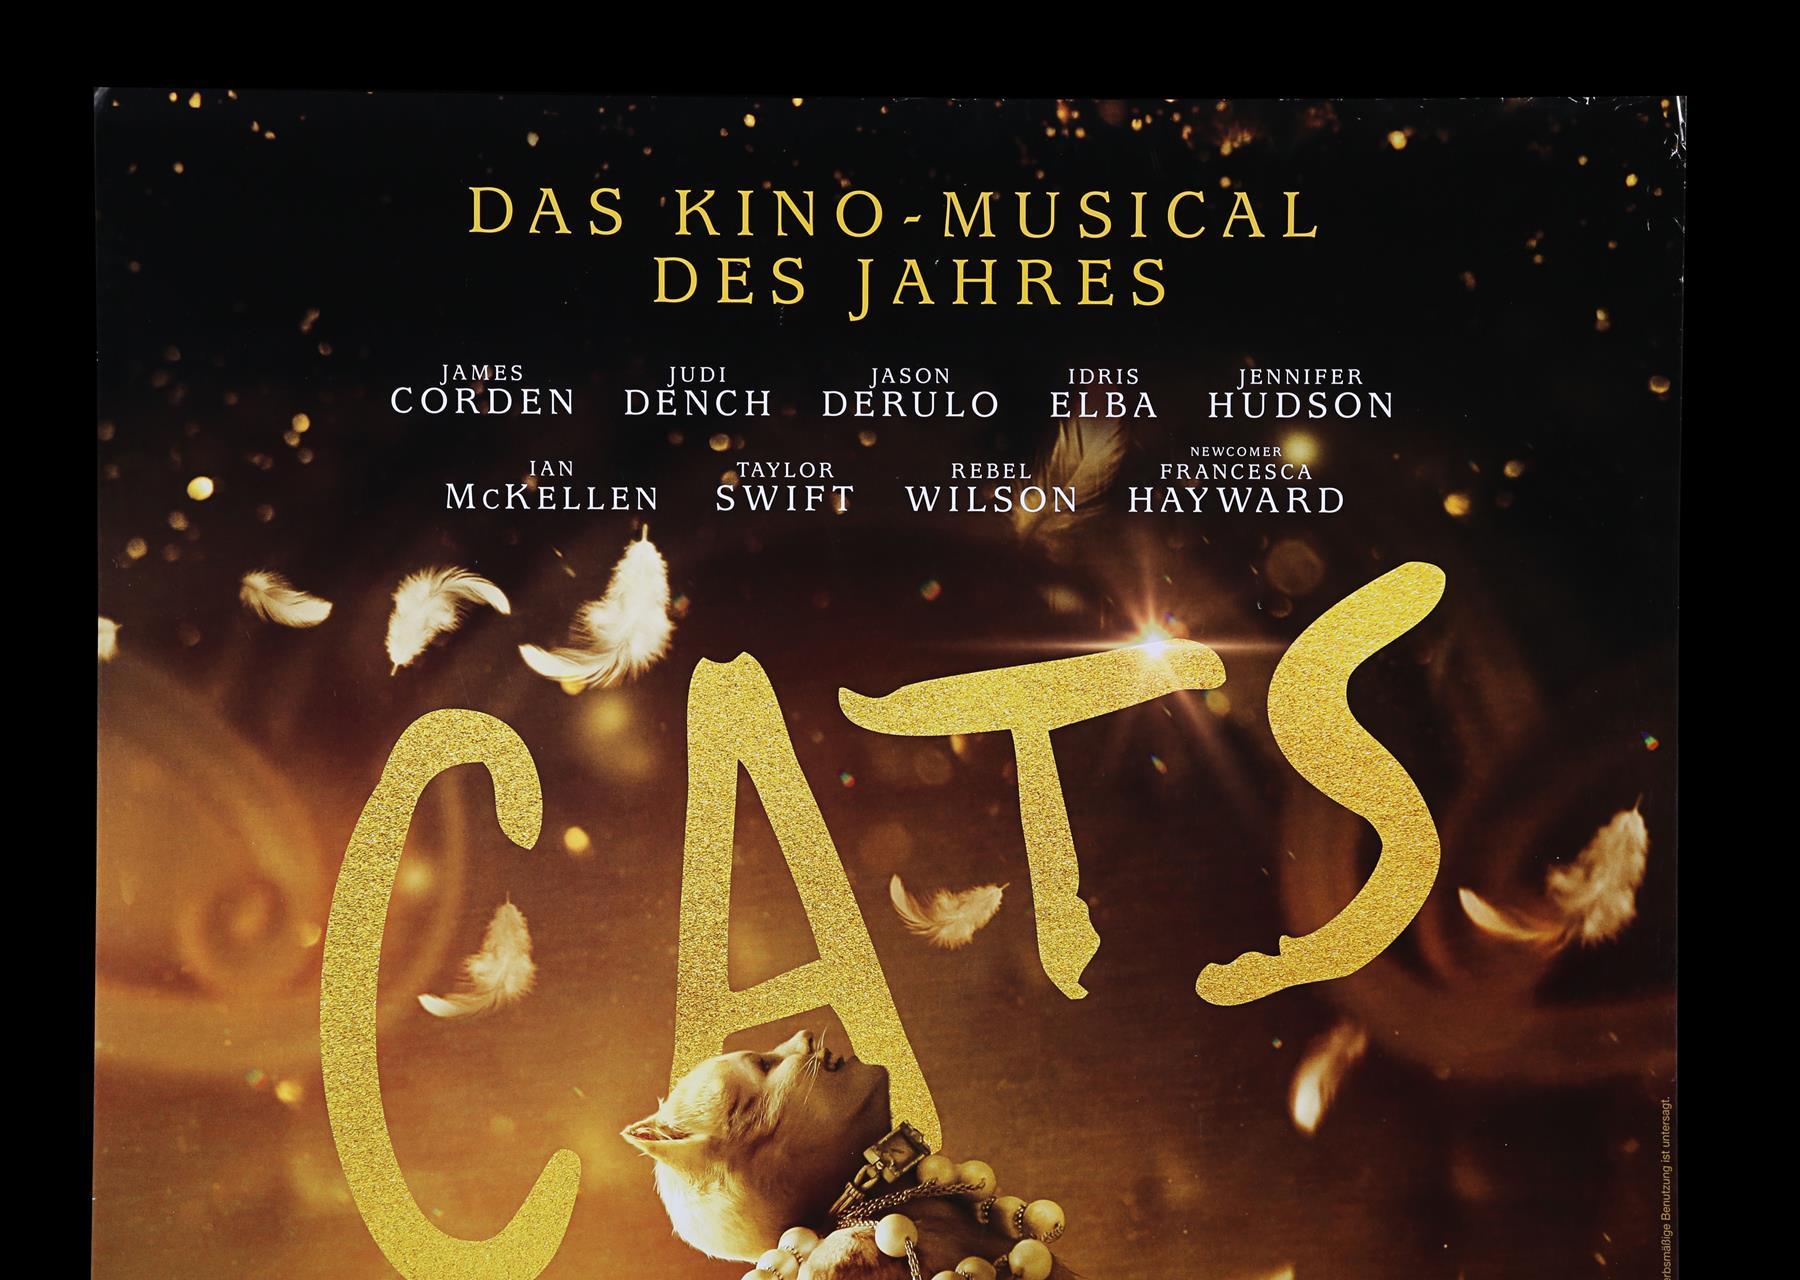 CATS (2019) - Poster, 2019, Autographed by Jason Derulo and Francesca Hayward - Image 2 of 6